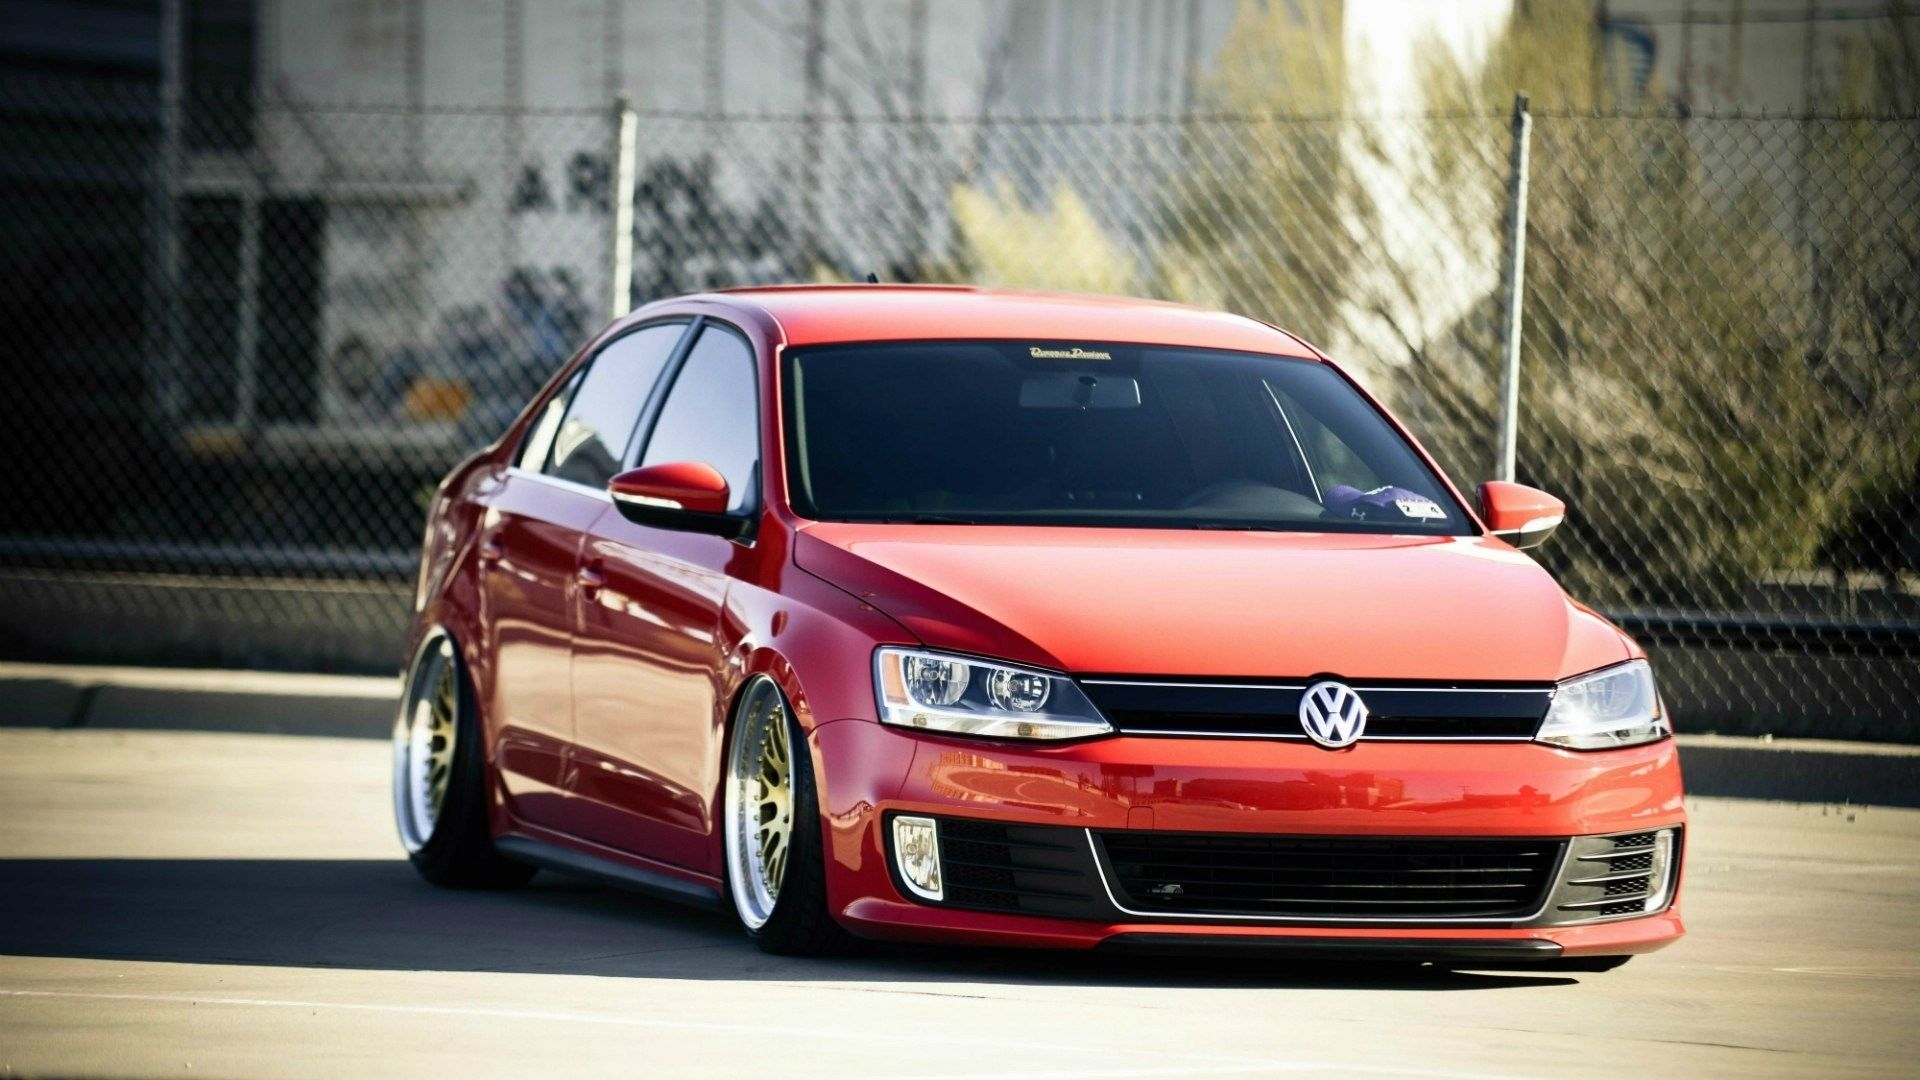 volkswagen jetta gli tuning custom rims low car hd wallpaper zoomwalls projects to try. Black Bedroom Furniture Sets. Home Design Ideas